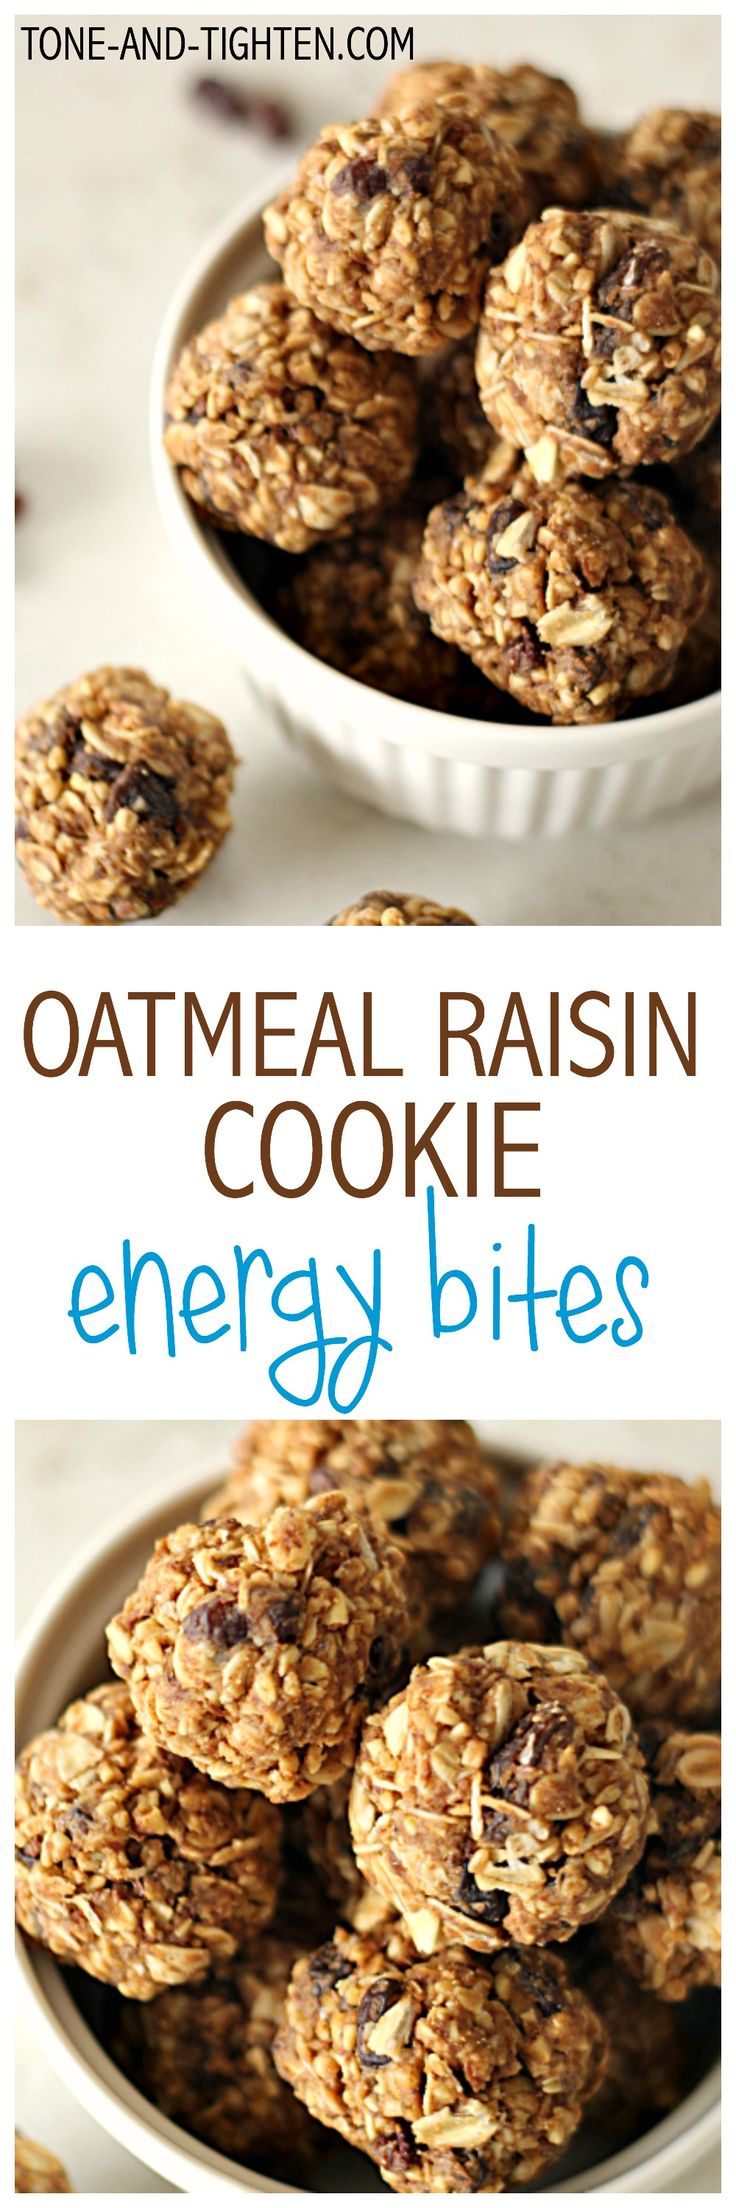 Oatmeal Raisin Cookie Energy Bites from Tone-and-Tighten.com